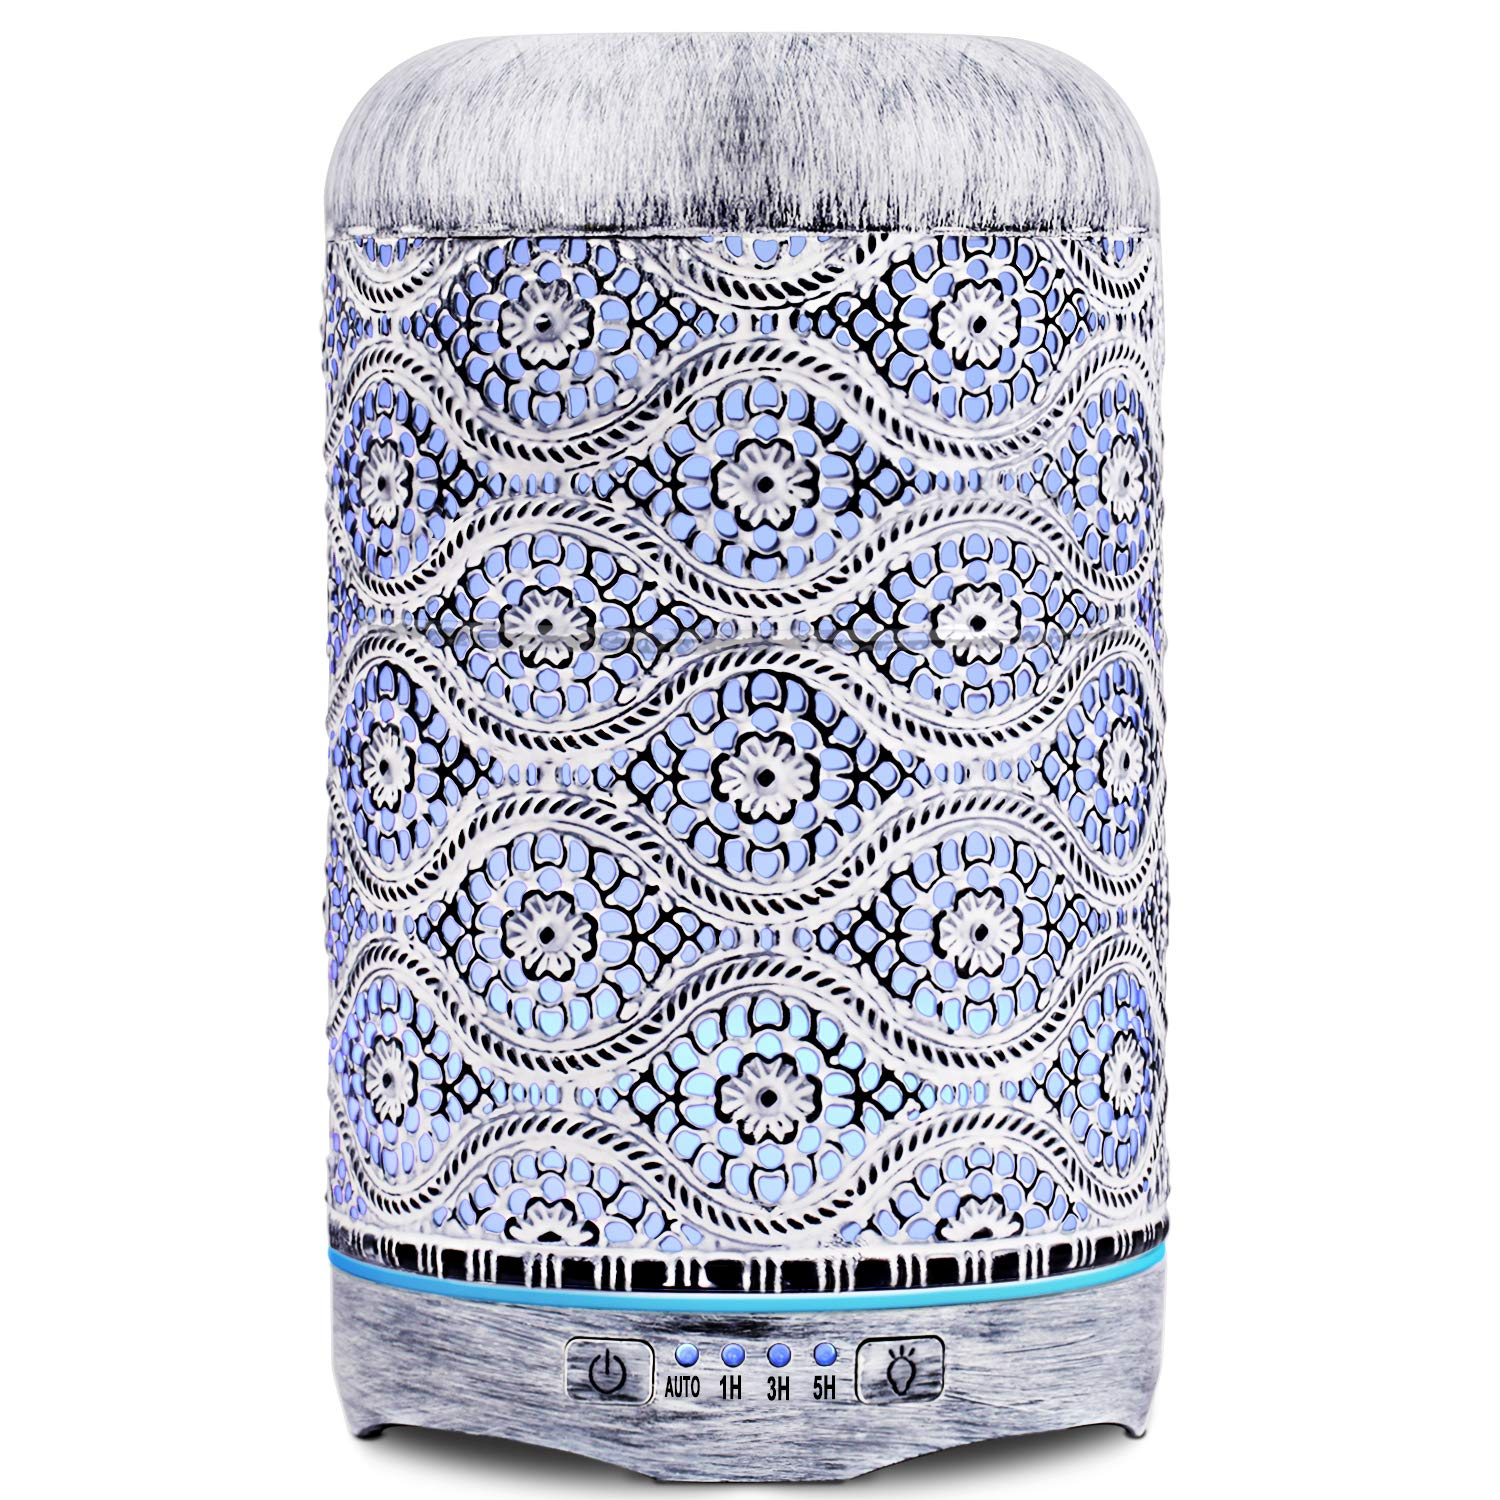 SALKING 260ml Essential Oil Diffuser, Metal Aromatherapy Diffuser Retro White Craft Oil Diffuser 7 Color LED Light Cool Mist Humidifier Waterless Auto Shut-off for Home Bedroom Office Yoga Spa